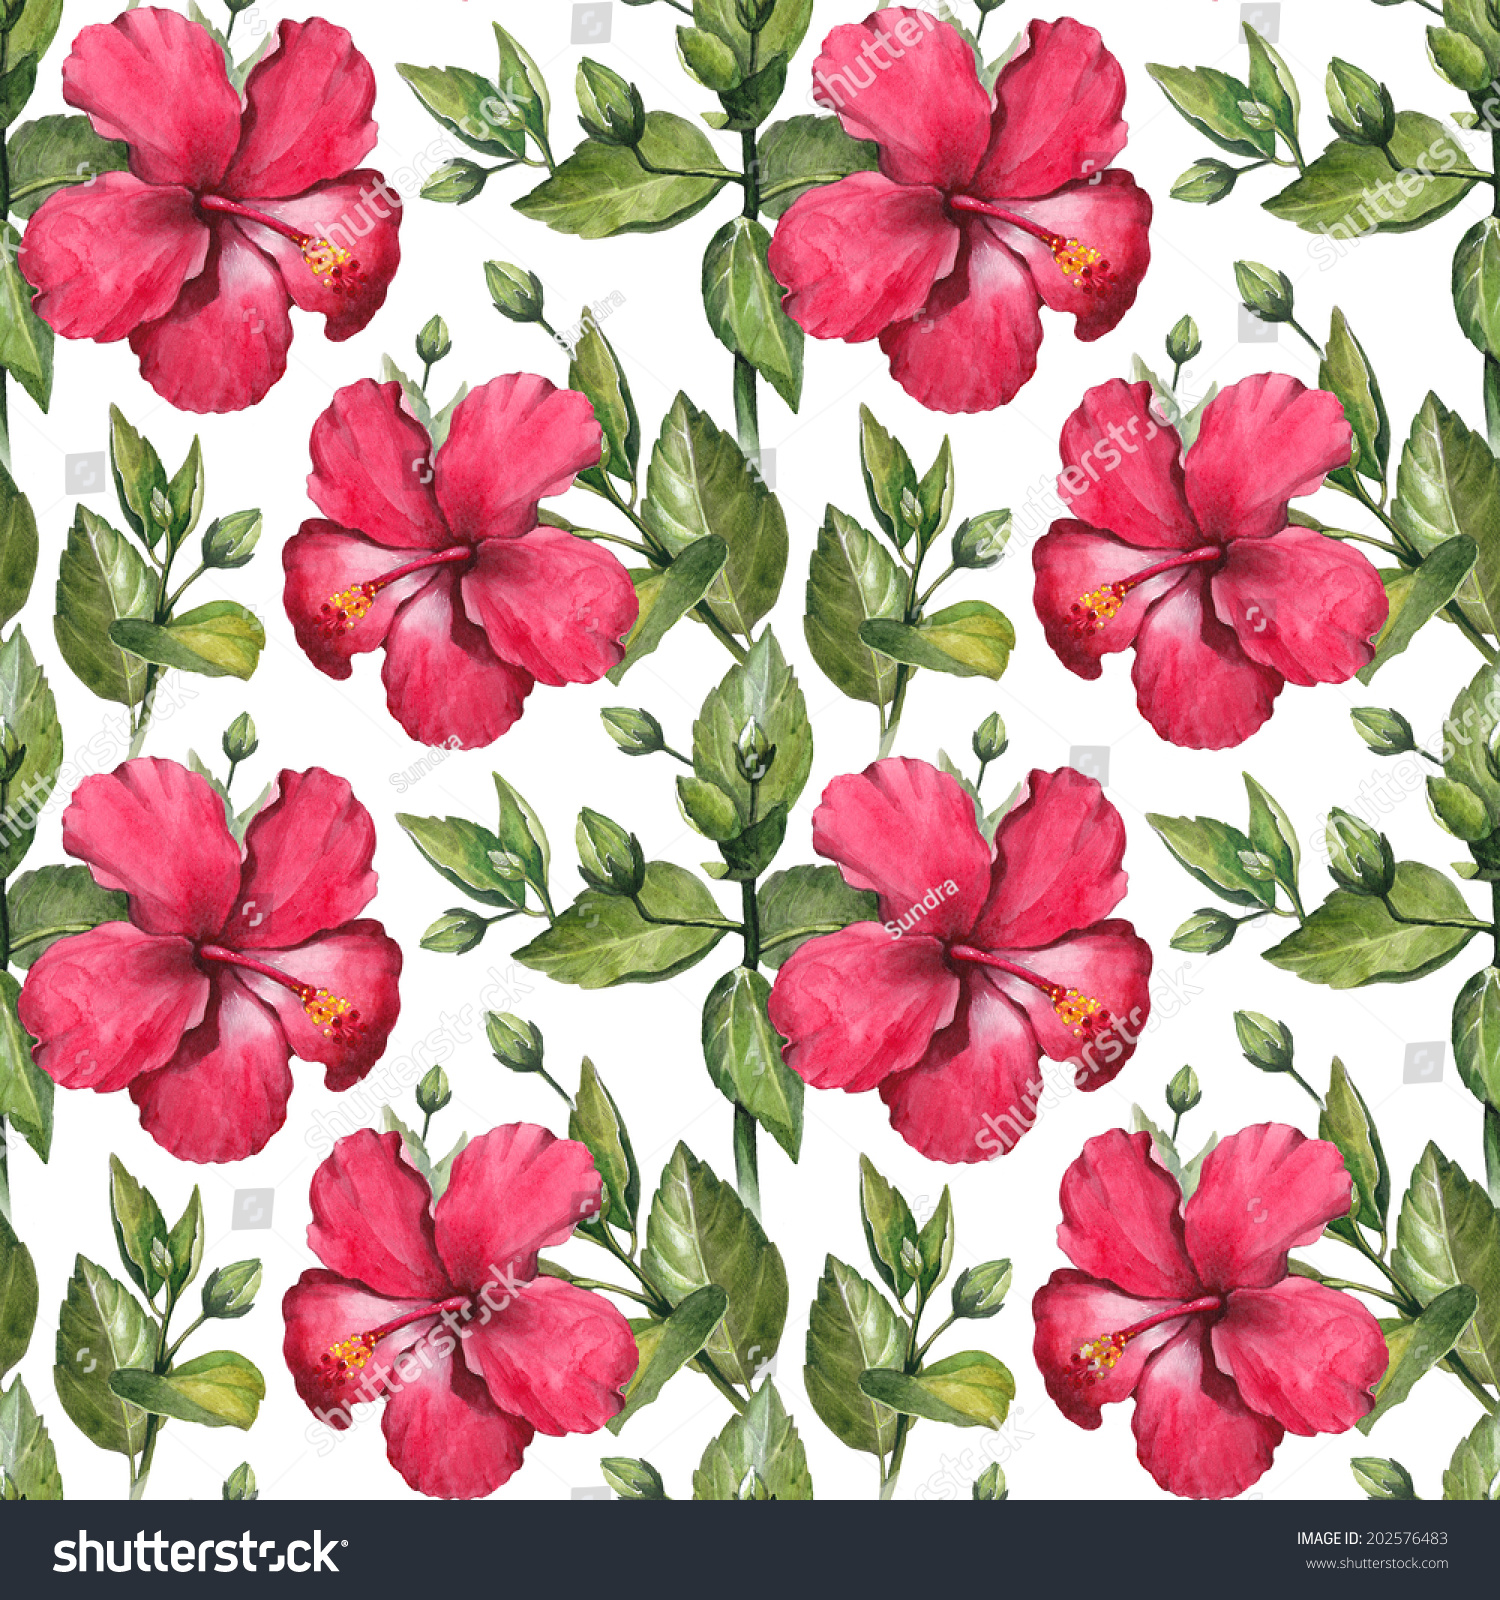 Watercolor Hibiscus Flower Illustration Seamless Pattern Ez Canvas